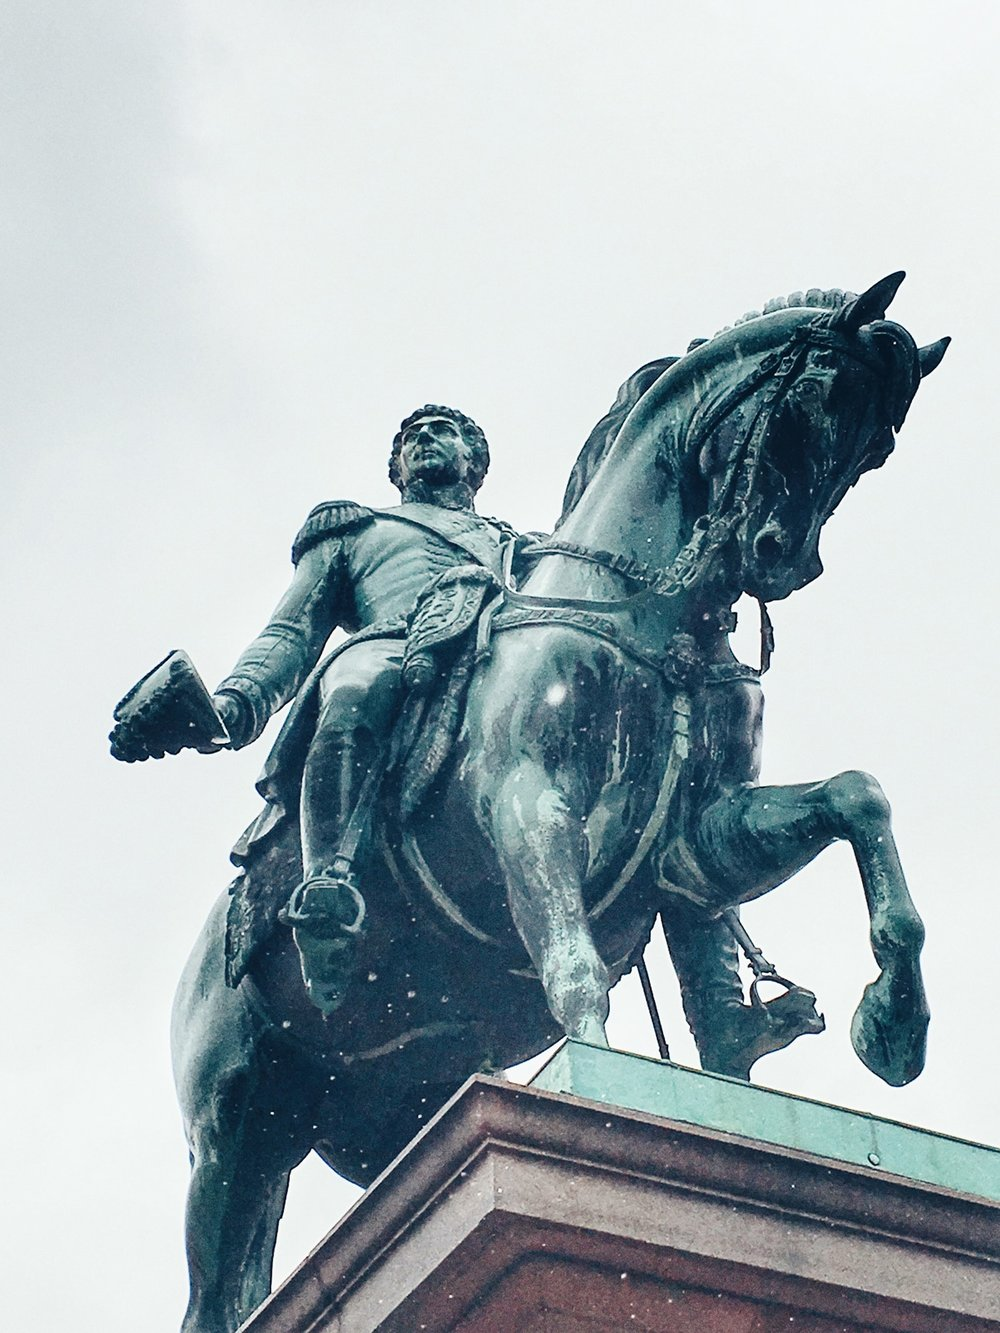 Statue of King Carl XIV Johan in front of the Royal Palace (Oslo, Norway)